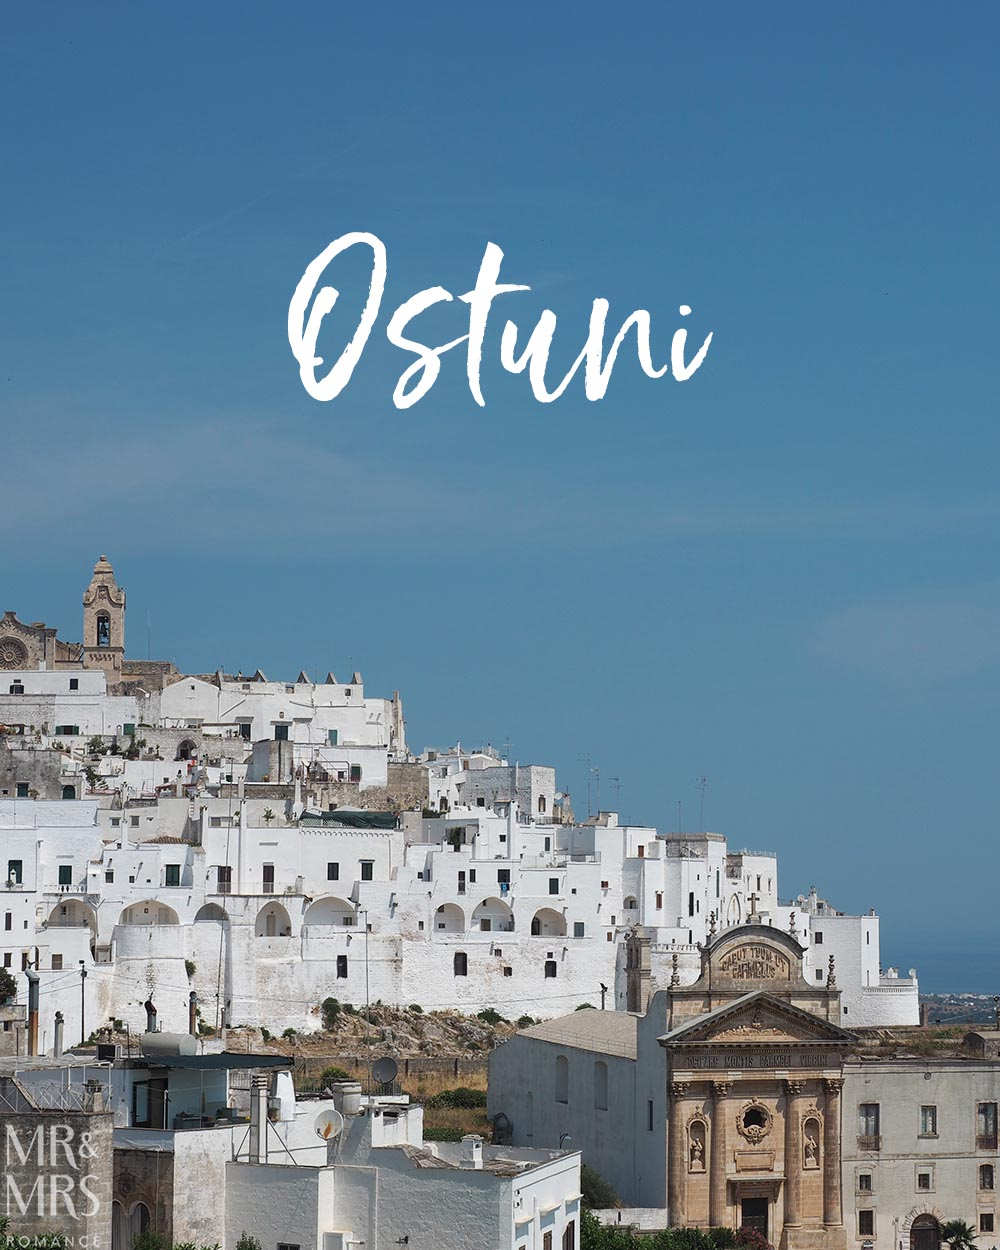 Top 10 towns of Puglia, Italy - Ostuni